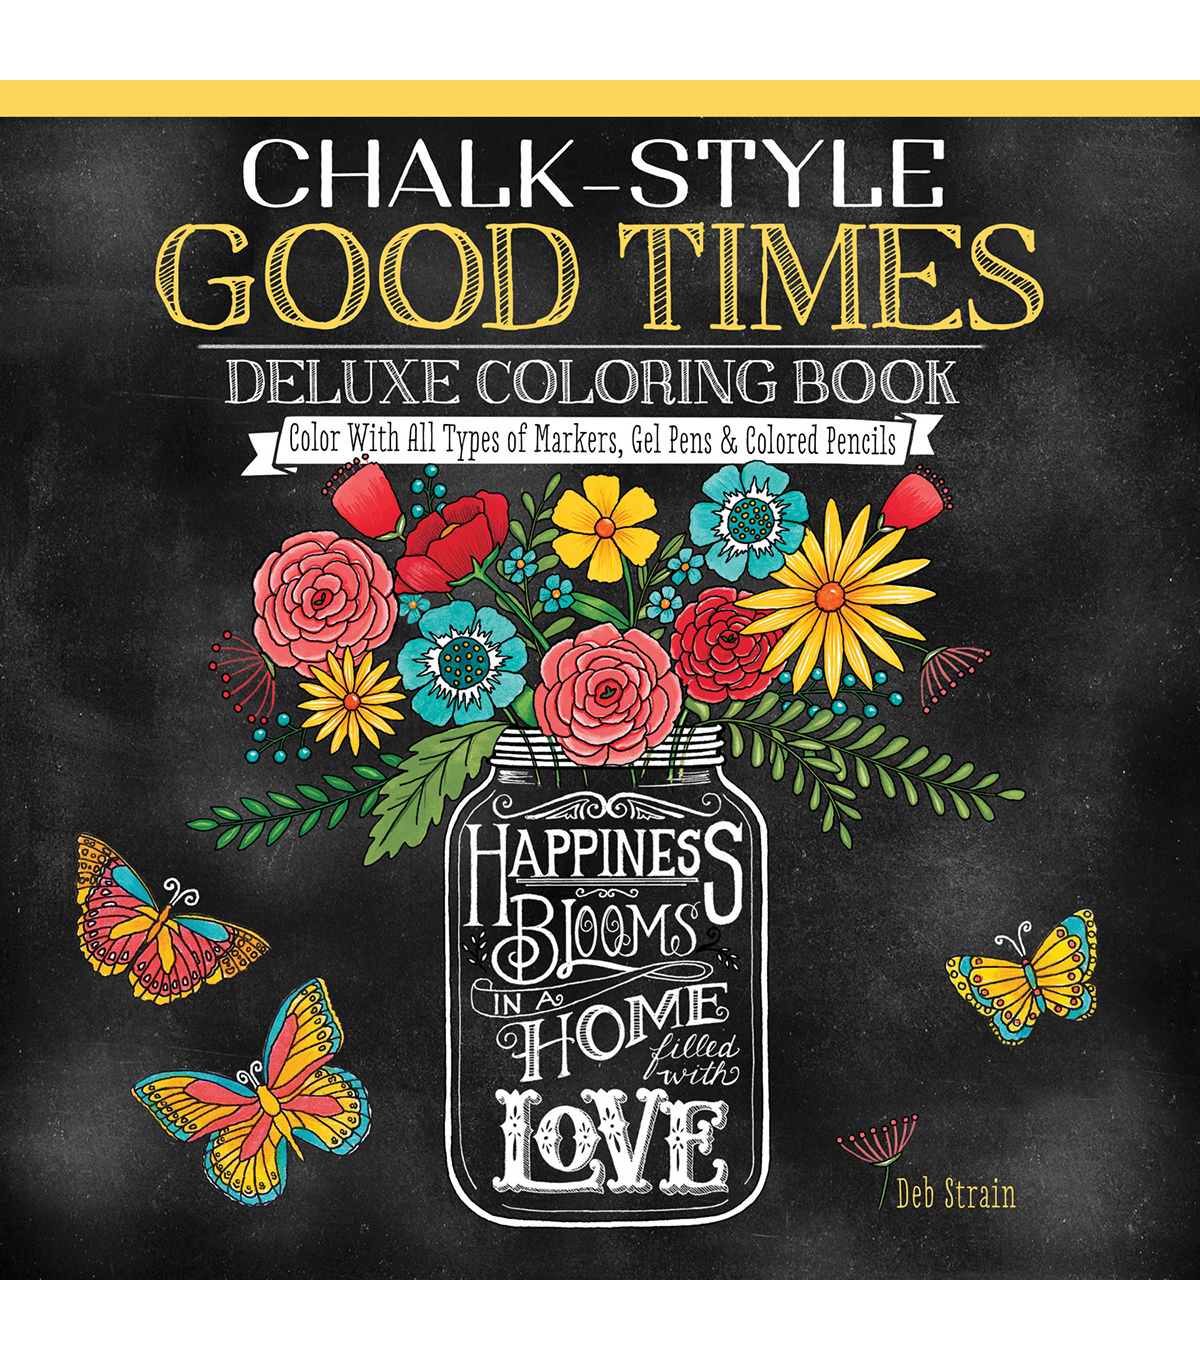 Chalk Style Good Times Deluxe Coloring Book